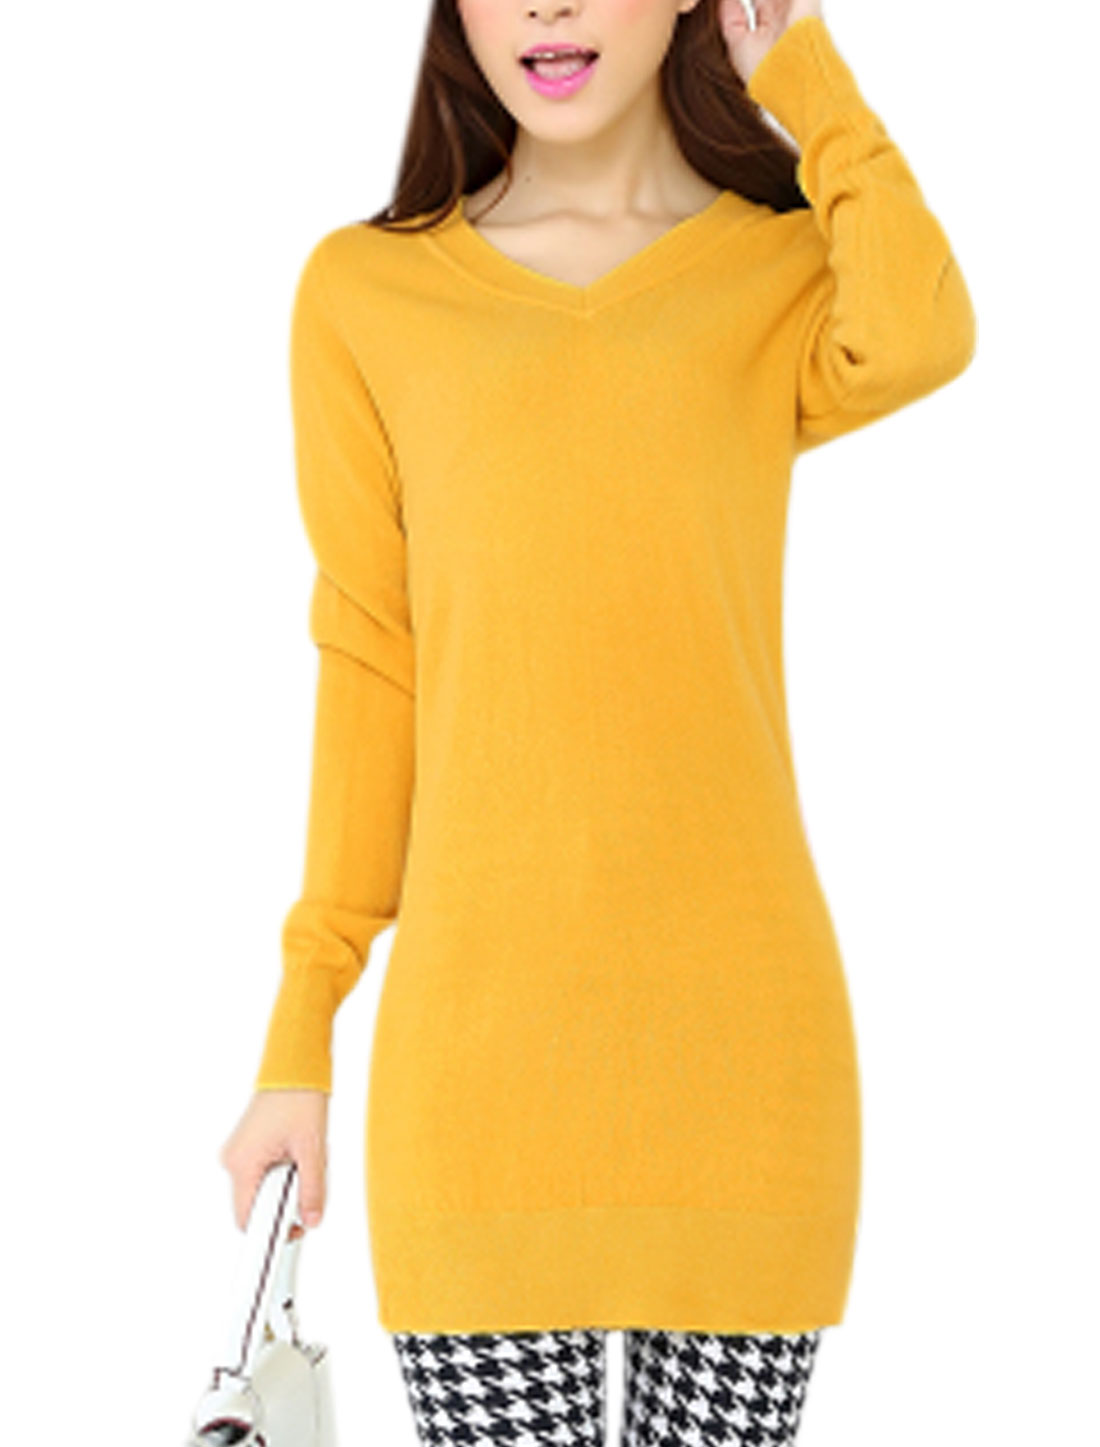 Lady Long Sleeves Slim Fit V Neck Yellow Tunic Knit Shirt XS